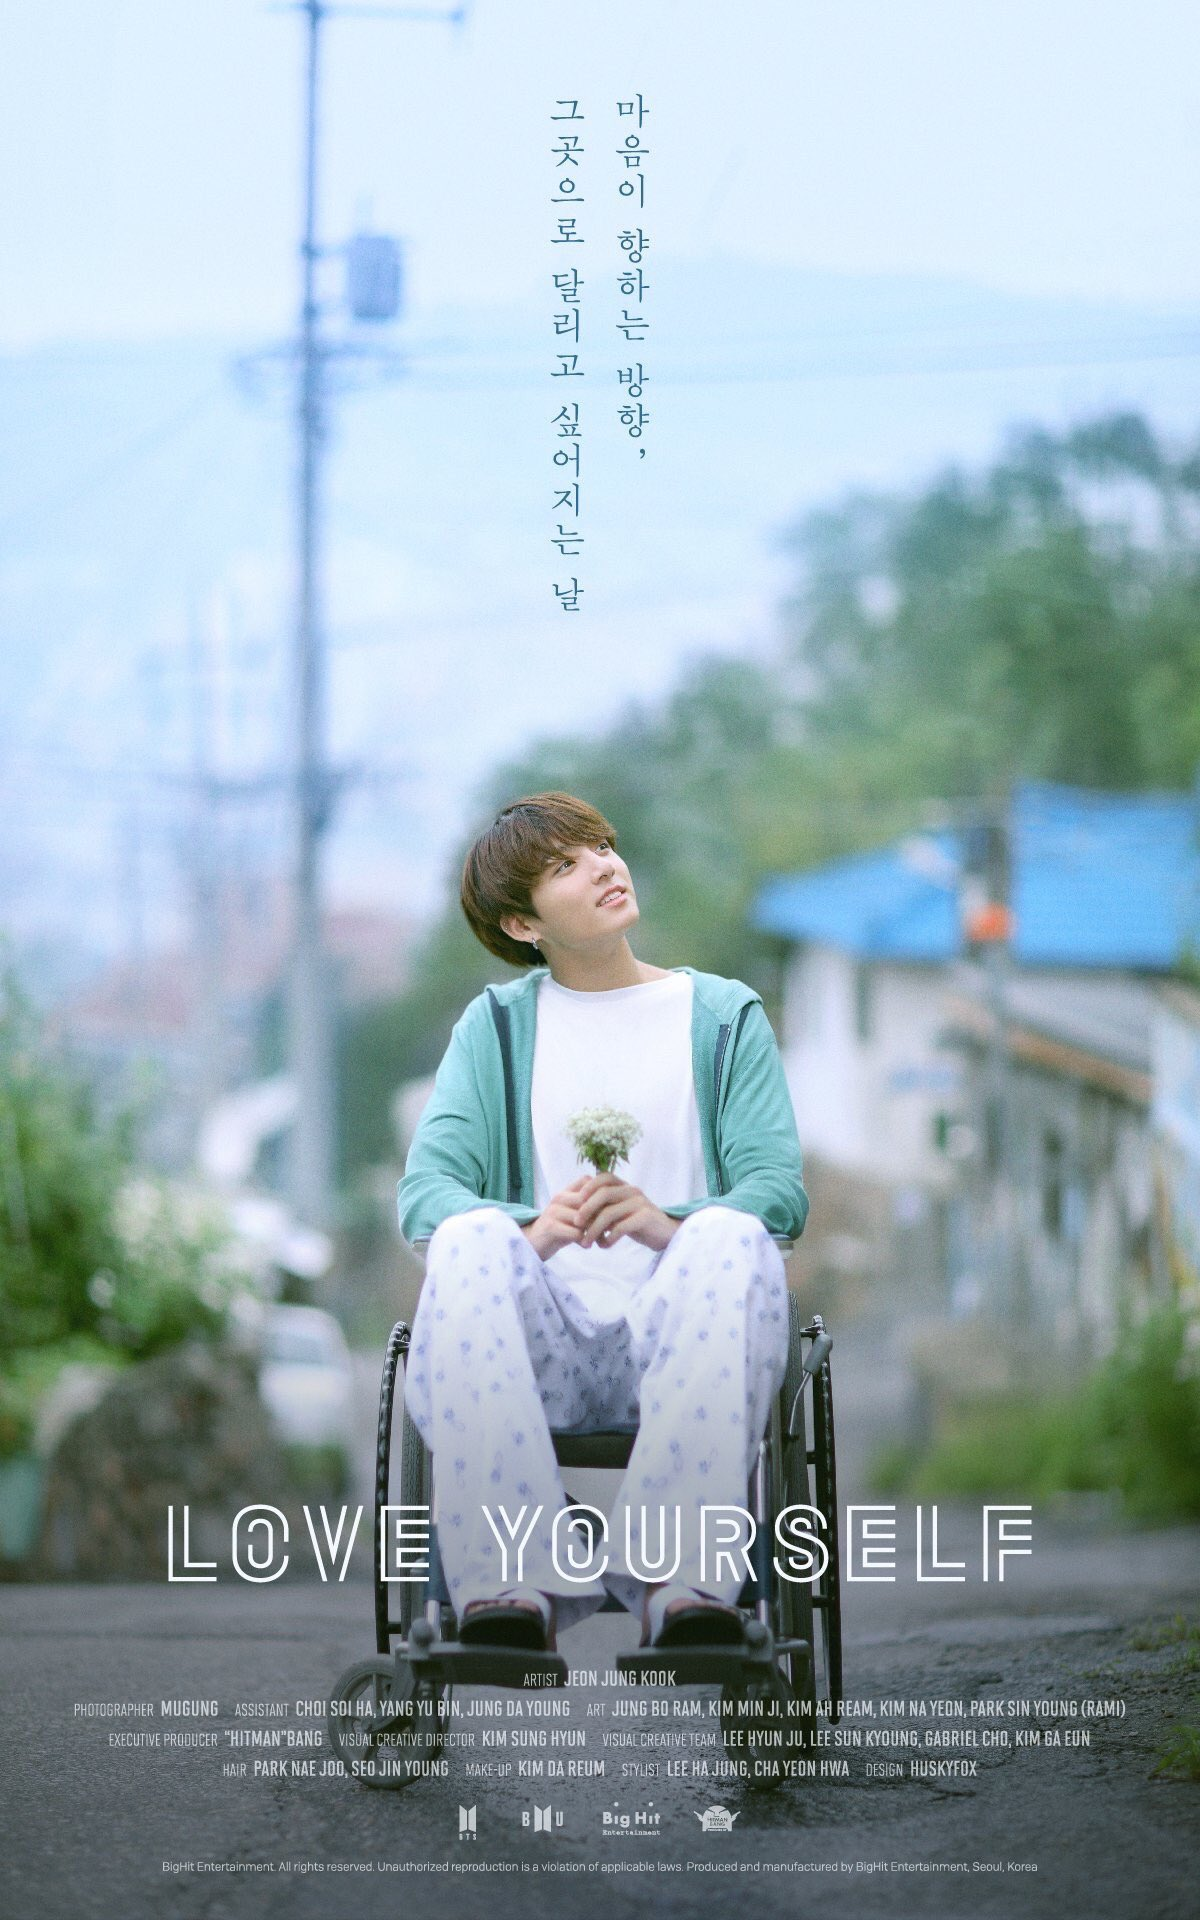 'The direction my heart looks towards, the day I want to run towards there'  #LOVE_YOURSELF #방탄소년단 https://t.co/rlqRvLoeoR